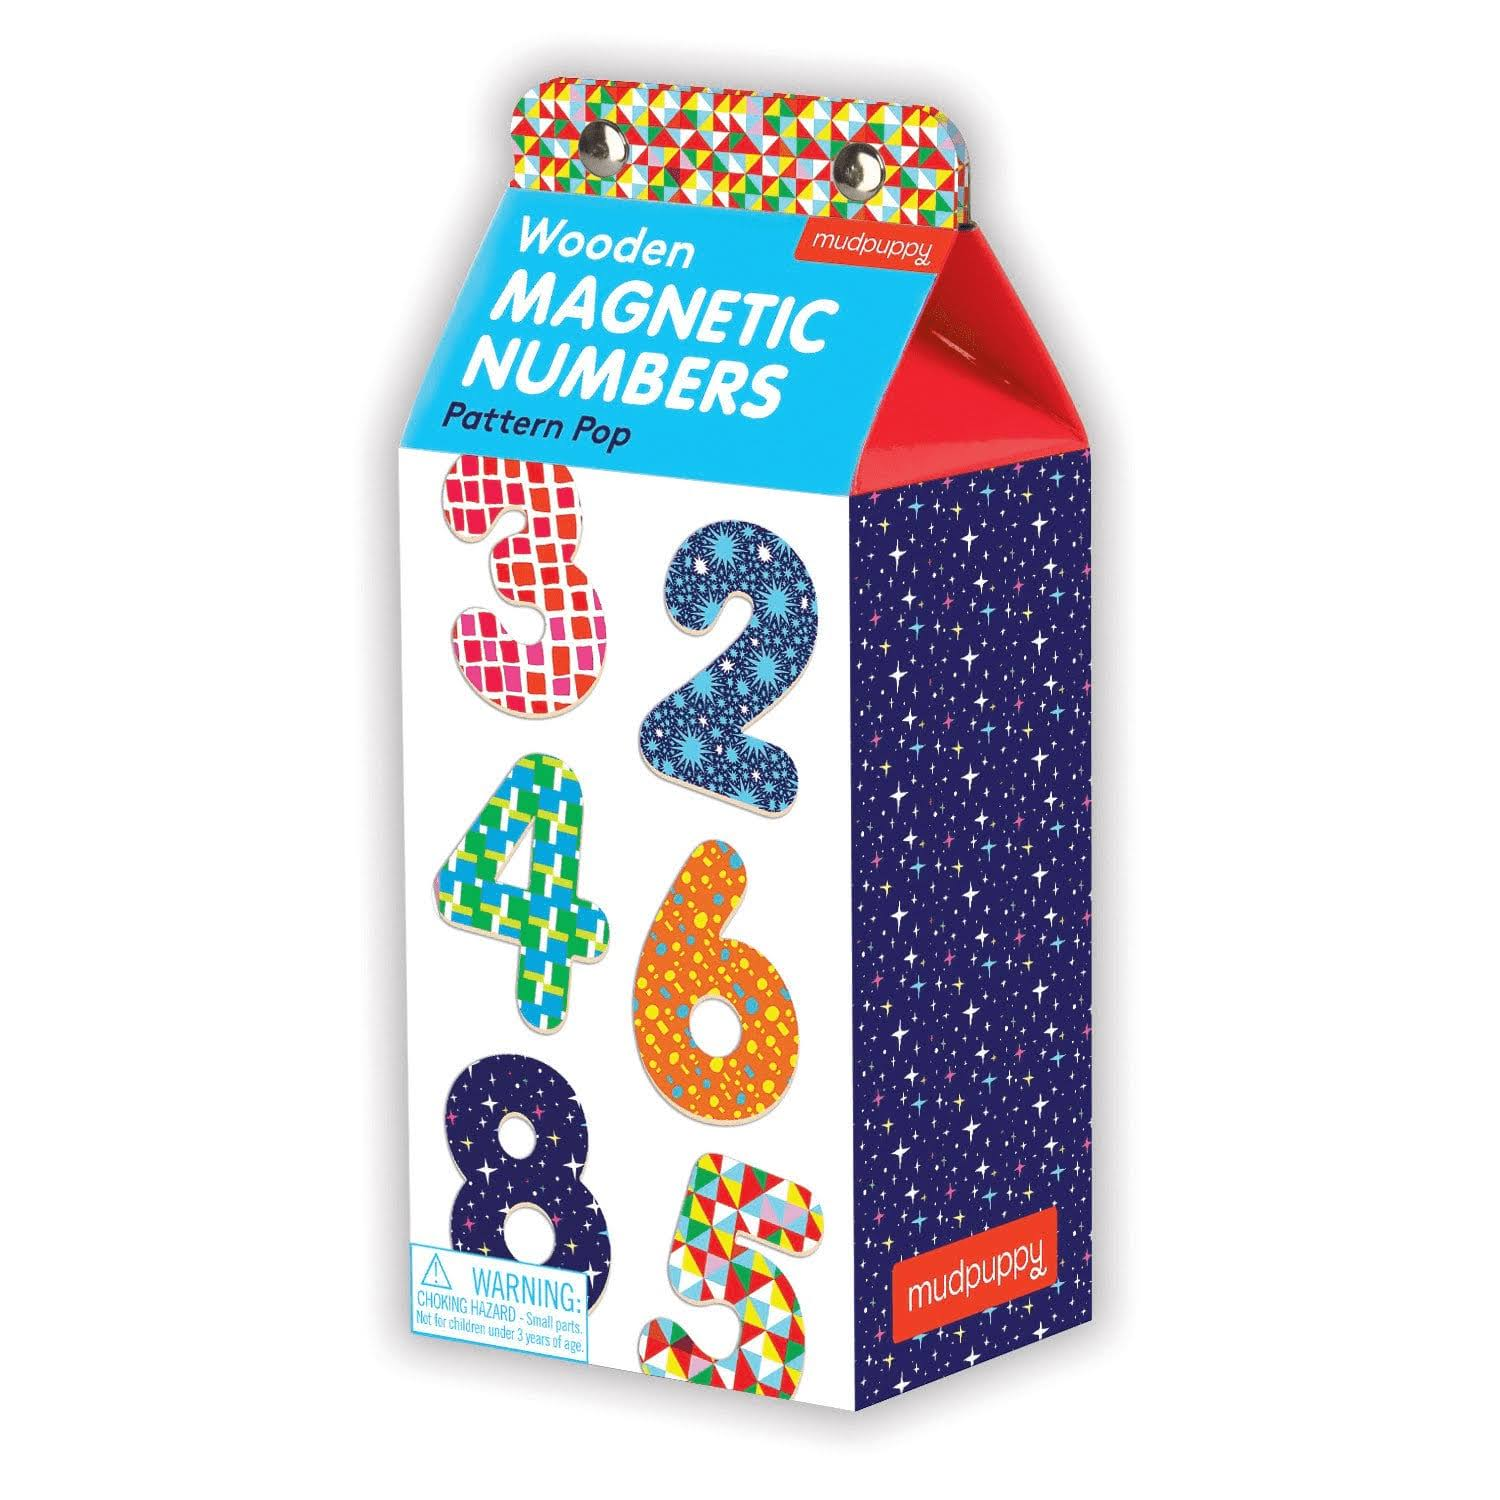 Pattern Pop Wooden Magnetic Numbers - Mudpuppy